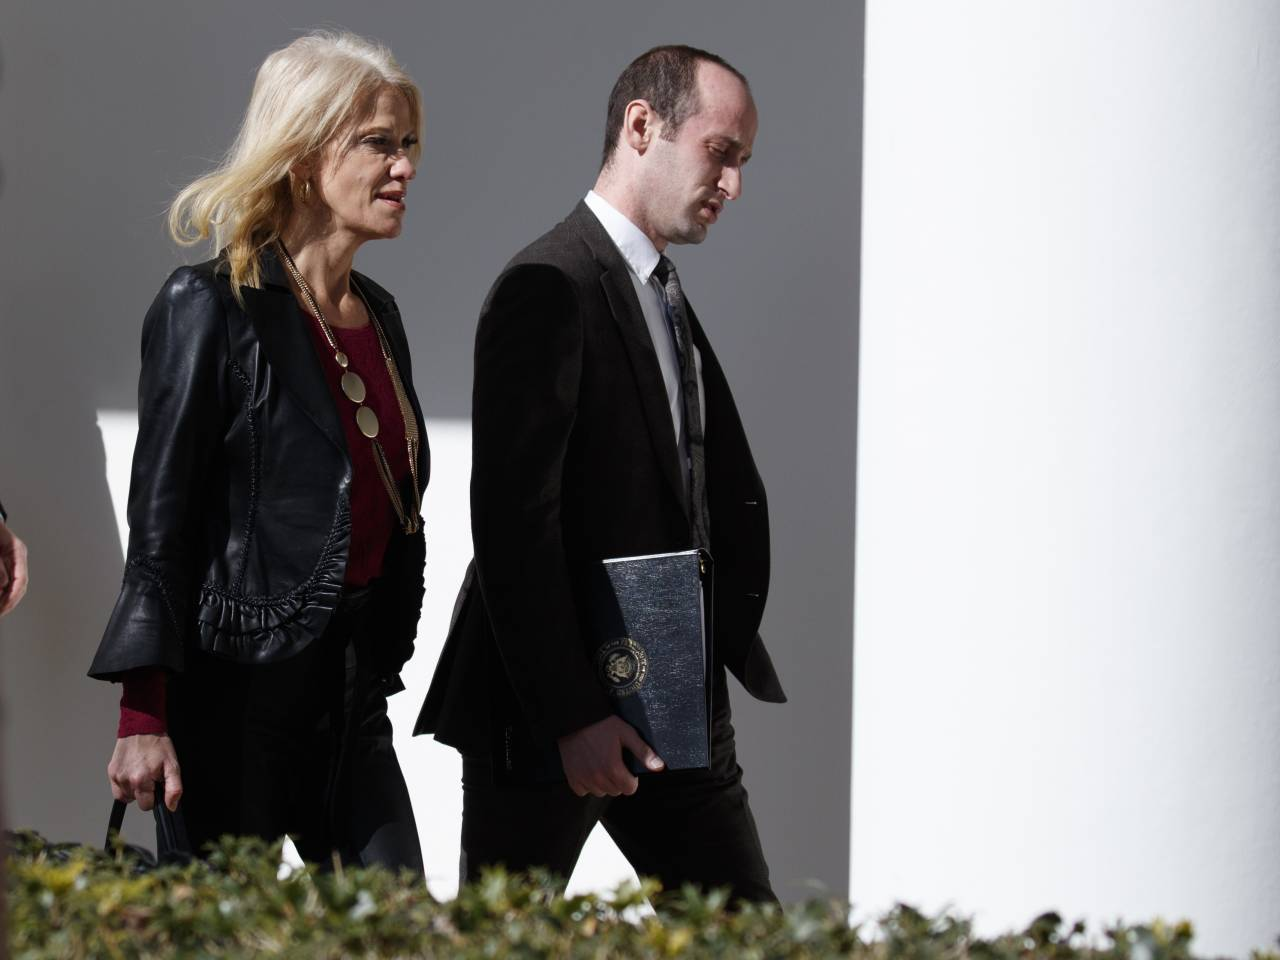 Trump adviser Stephen Miller lied - and it matters